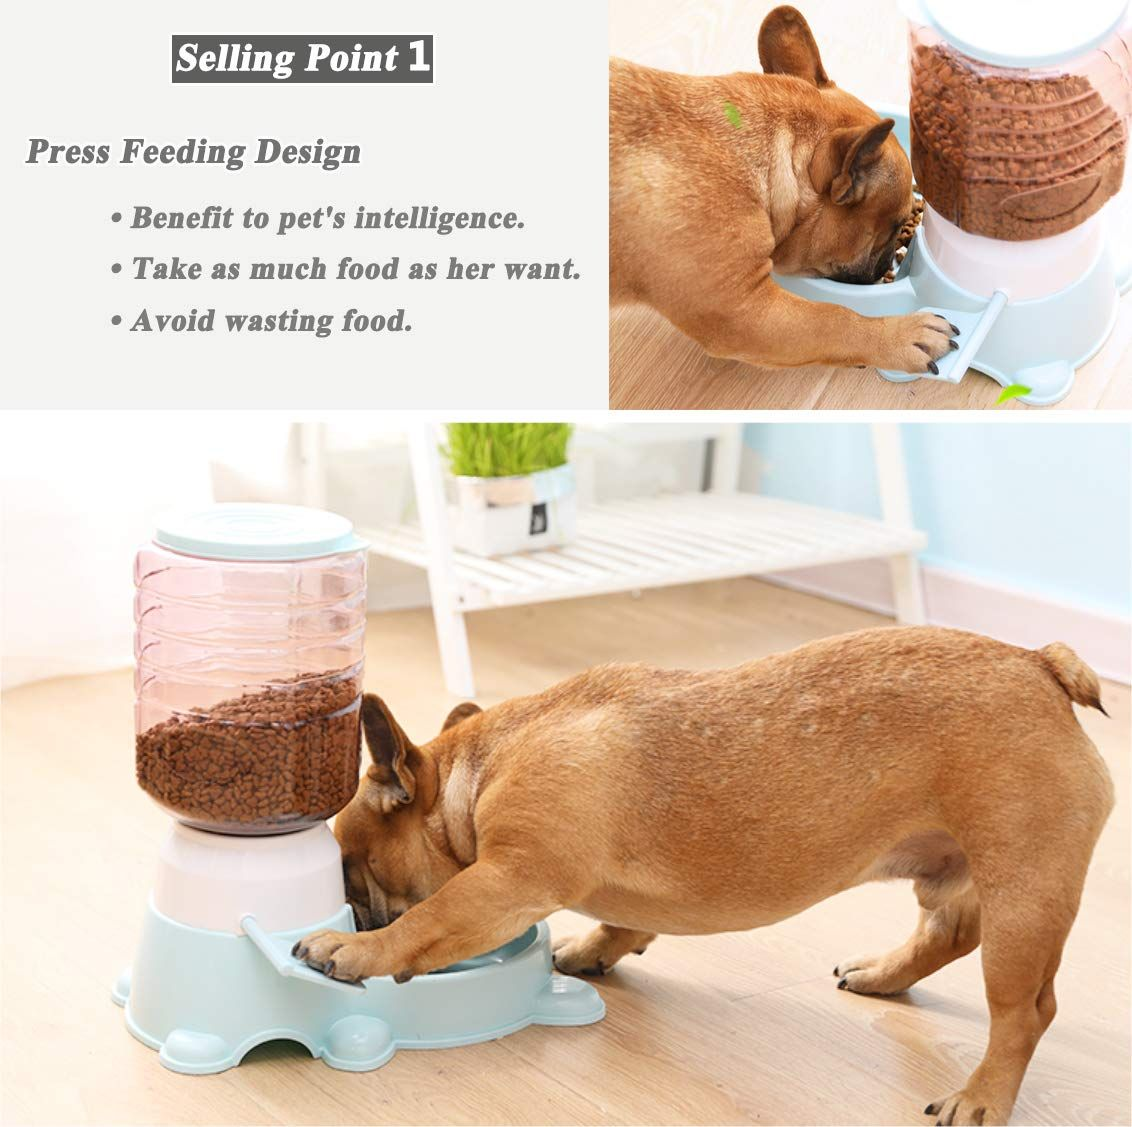 Jmini Pet Feeder 3 8l Press Pedal Self Feeding Dry Food Dispenser For Cat Dog Reg Price 39 99 Final Price 19 99 50 Off After Th Pet Feeder Pets Dog Feeder